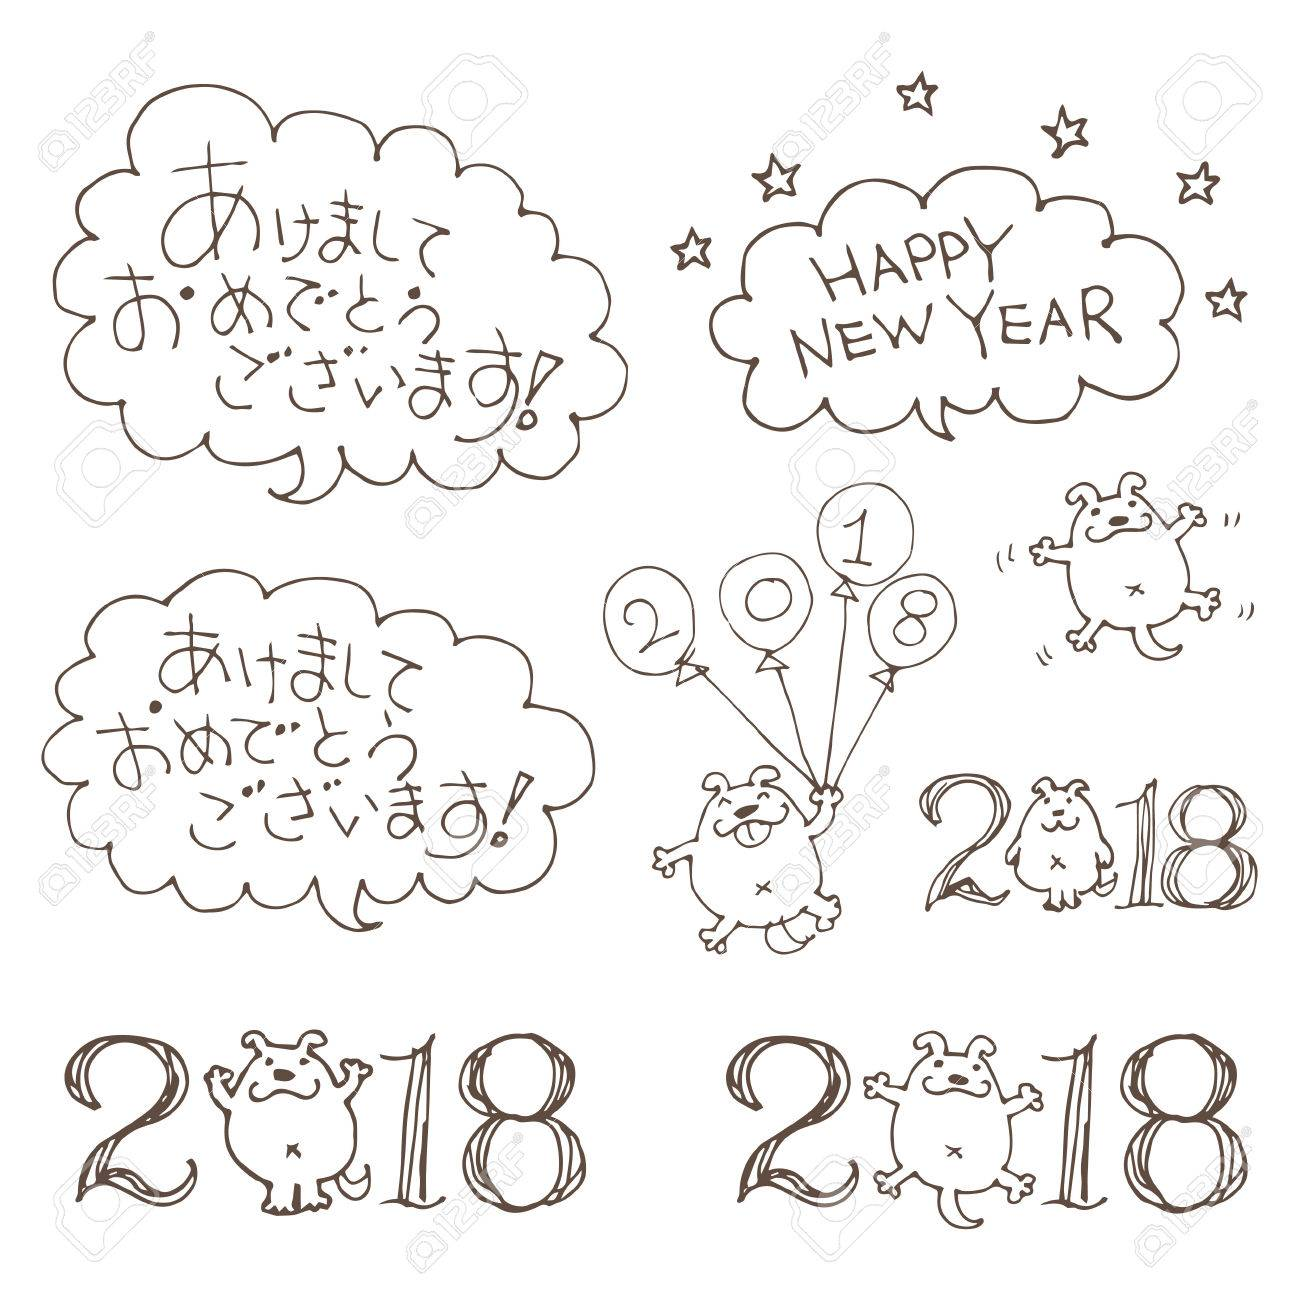 2018 New Year Card Elements Dogs And Greeting Words Translation